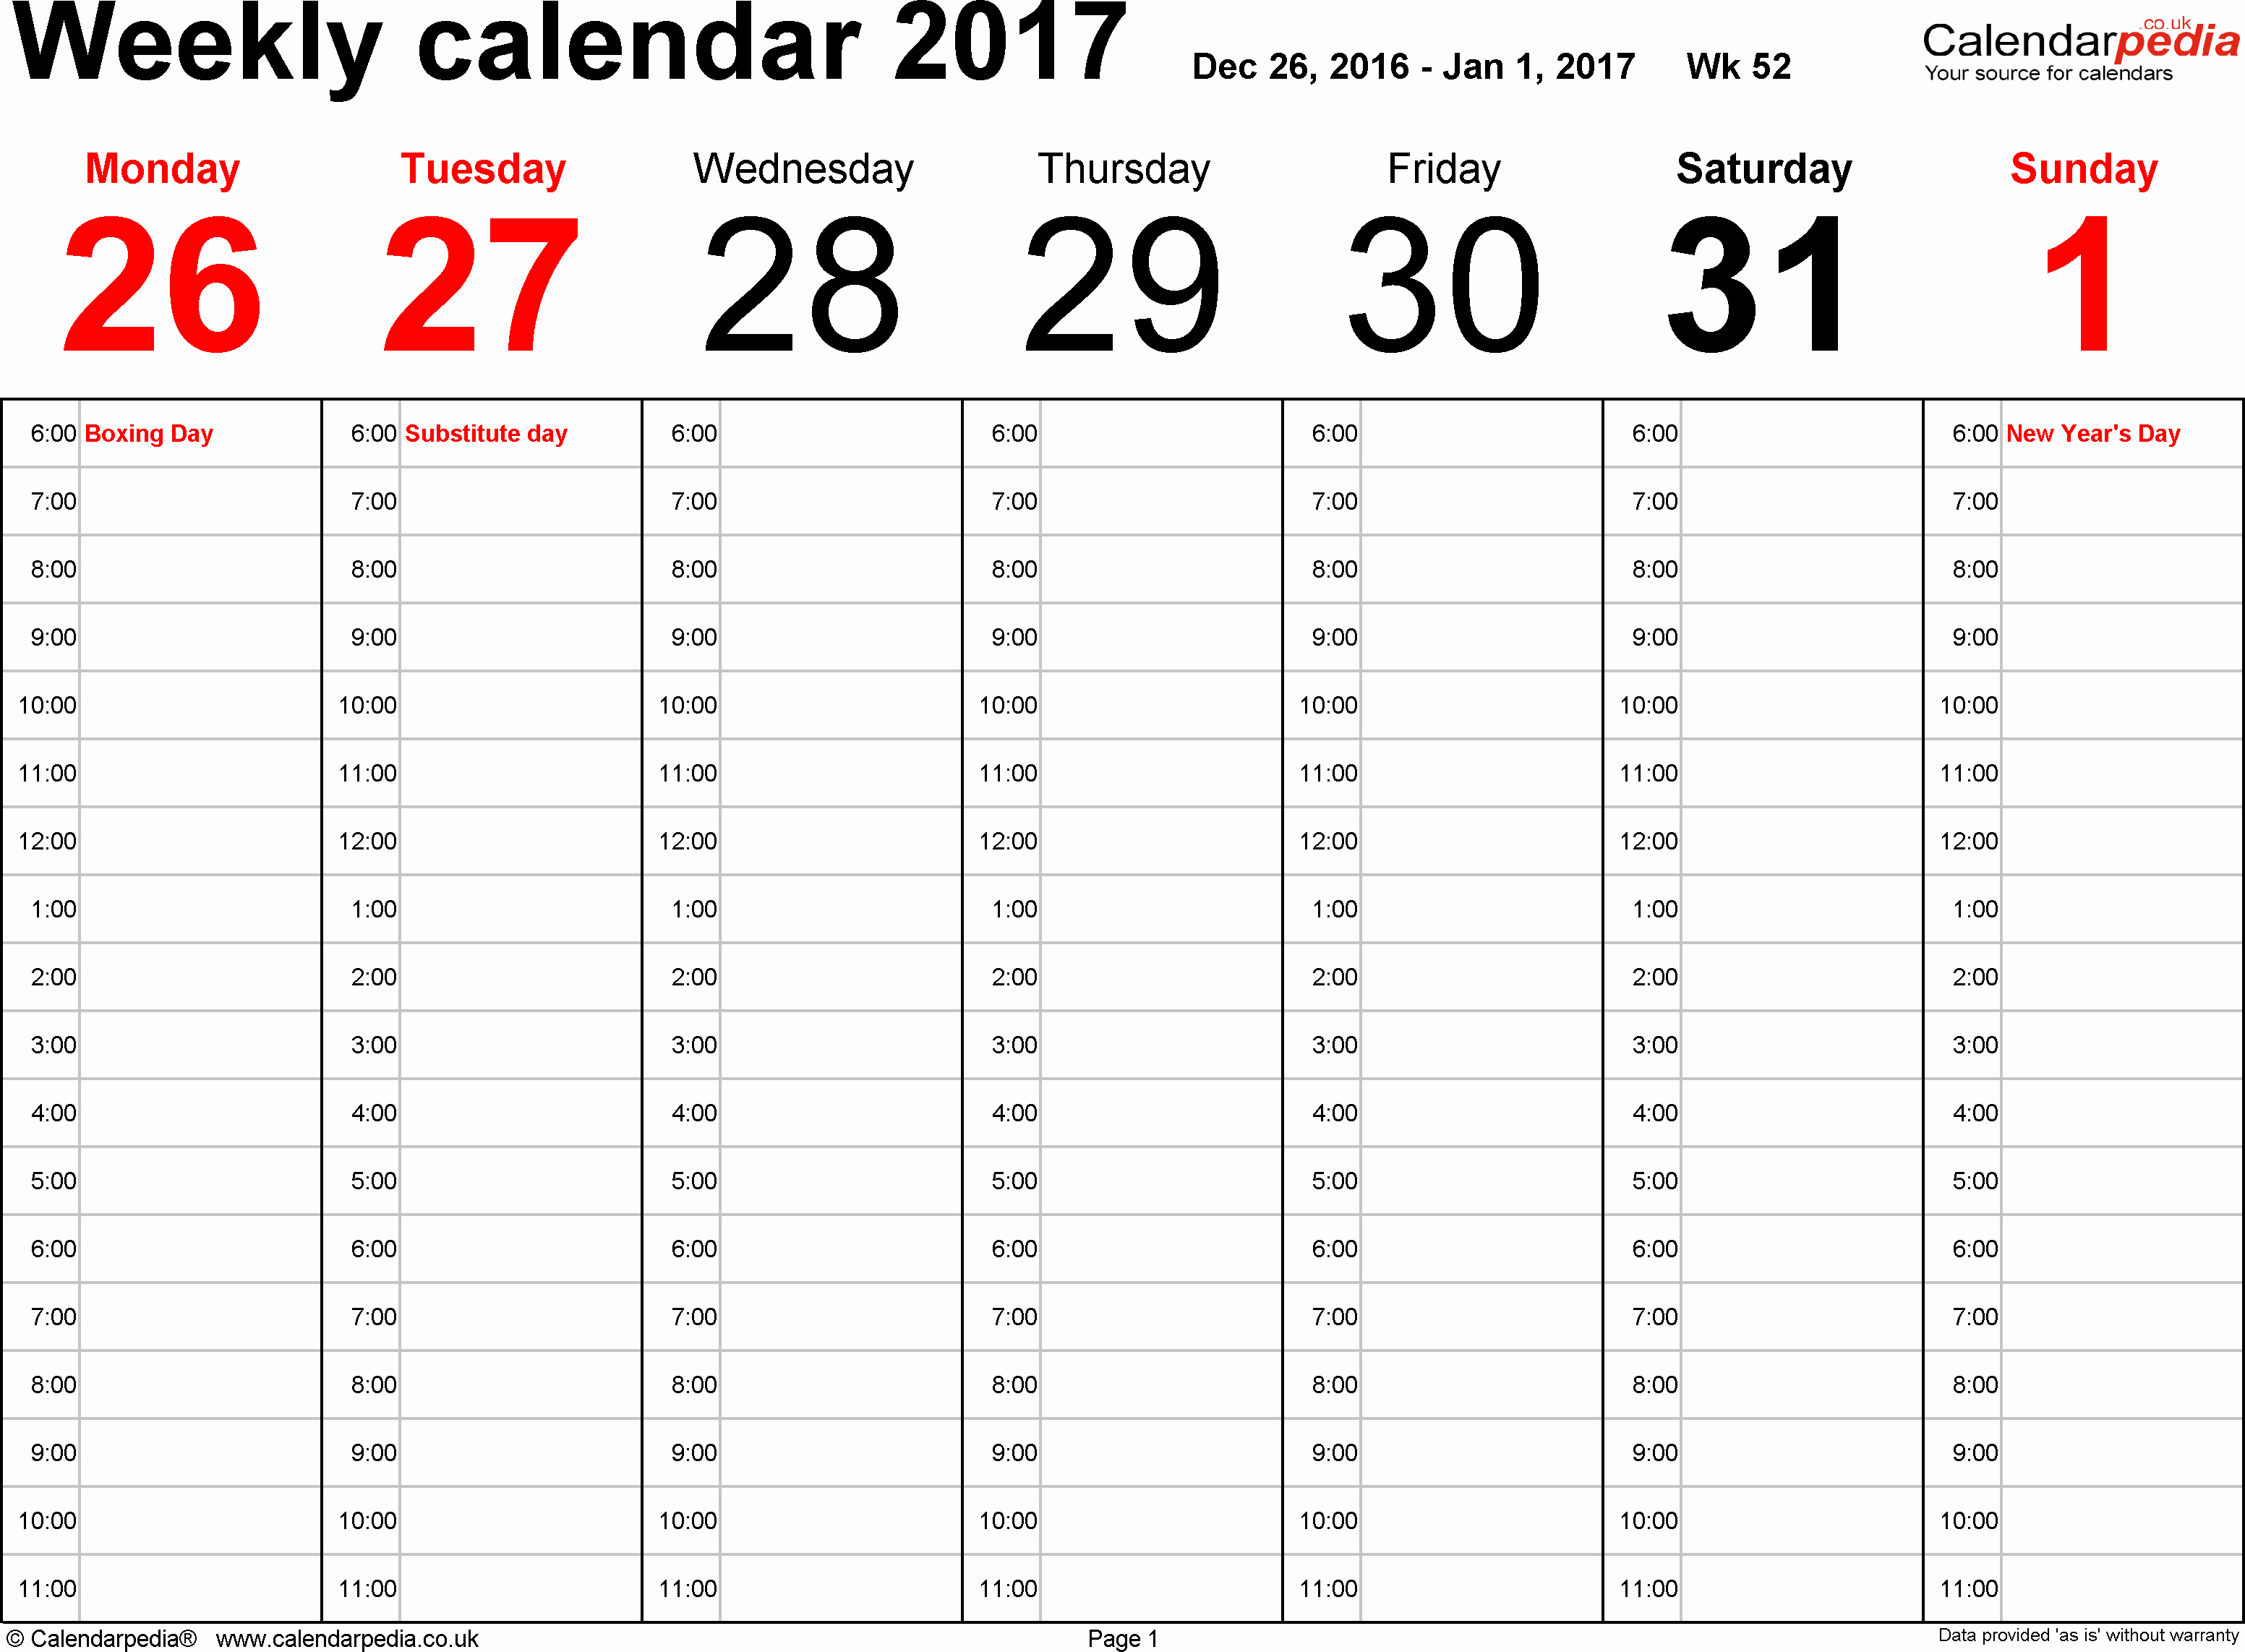 Weekly Calendar Template 2017 Awesome Weekly Calendar 2017 Uk Free Printable Templates for Excel